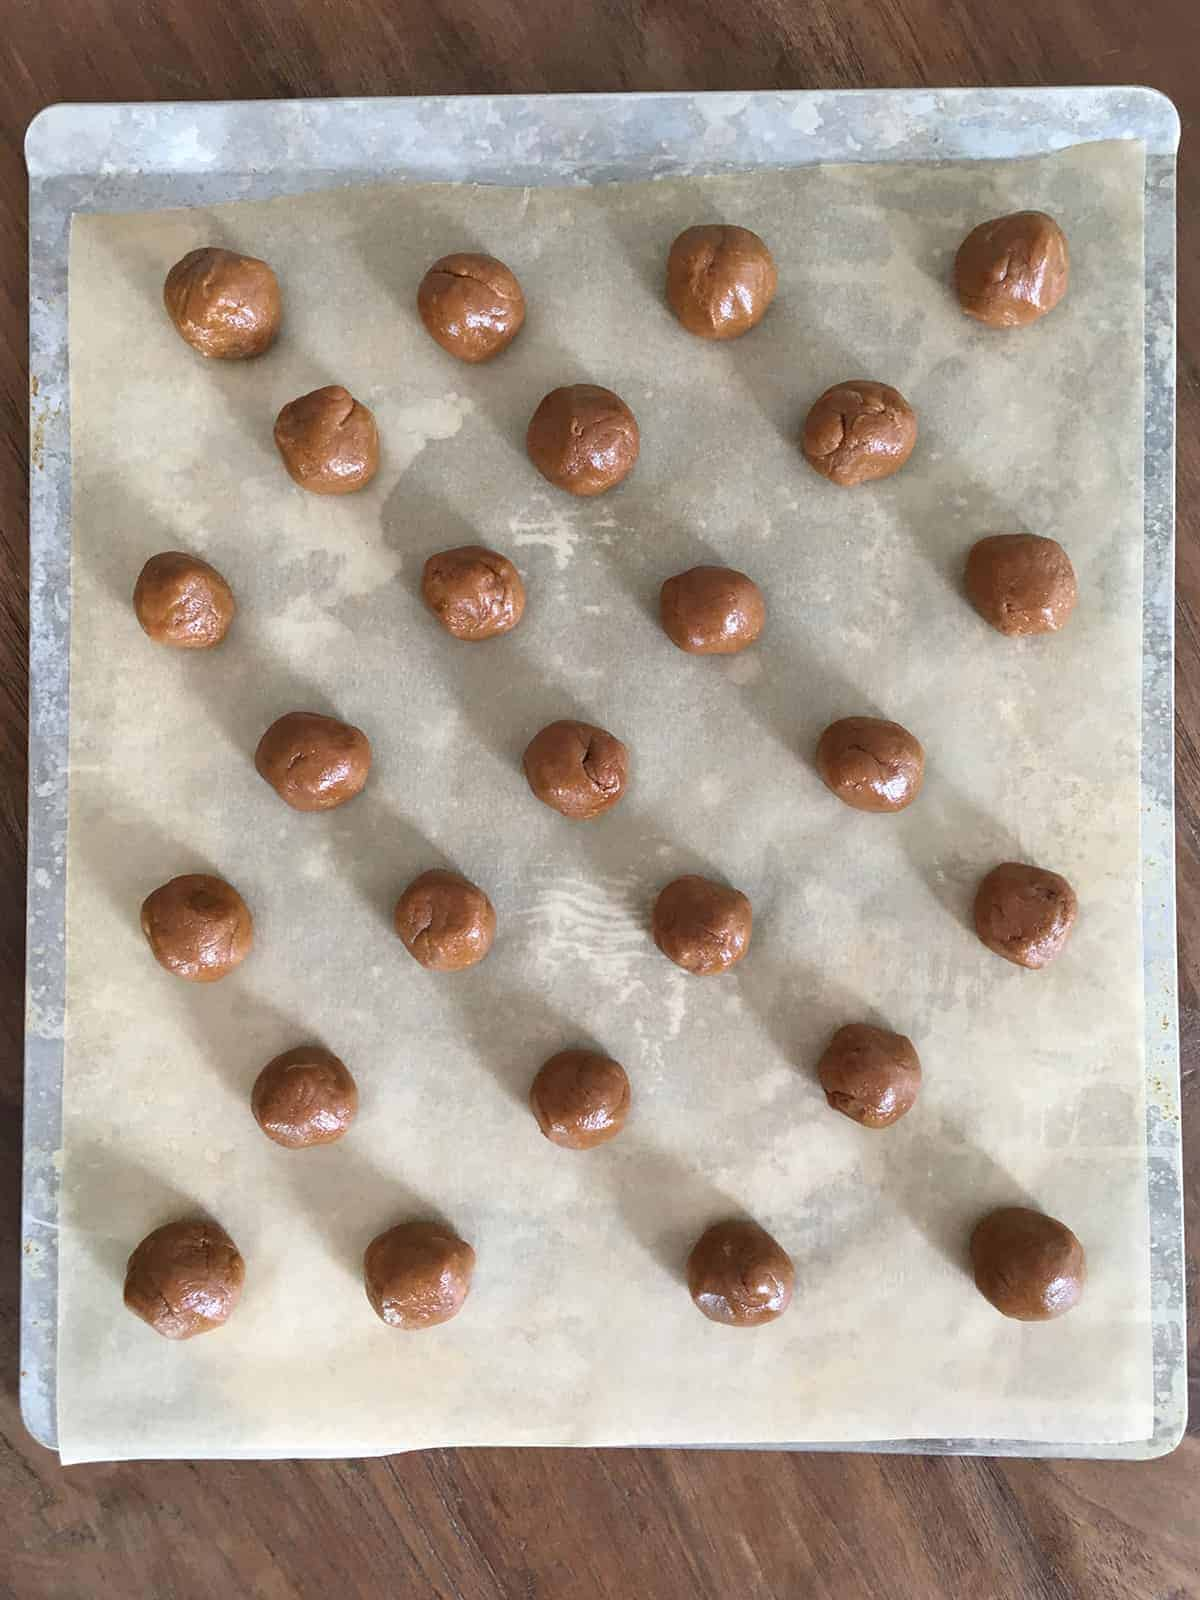 Peanut butter cookie dough balls on a stainless steel baking sheet lined with parchment paper